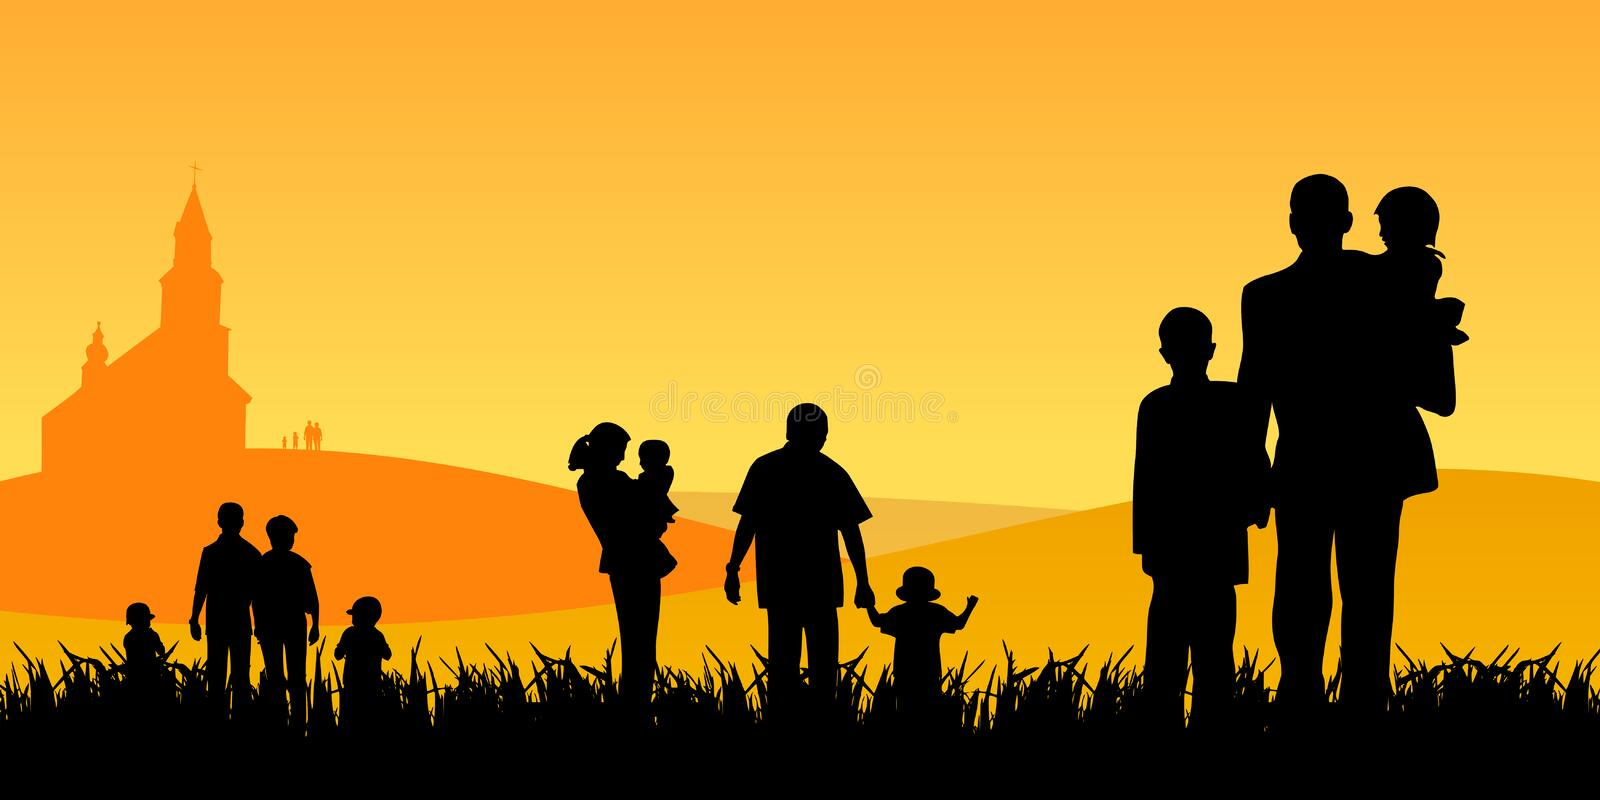 People with children going to church vector illustration